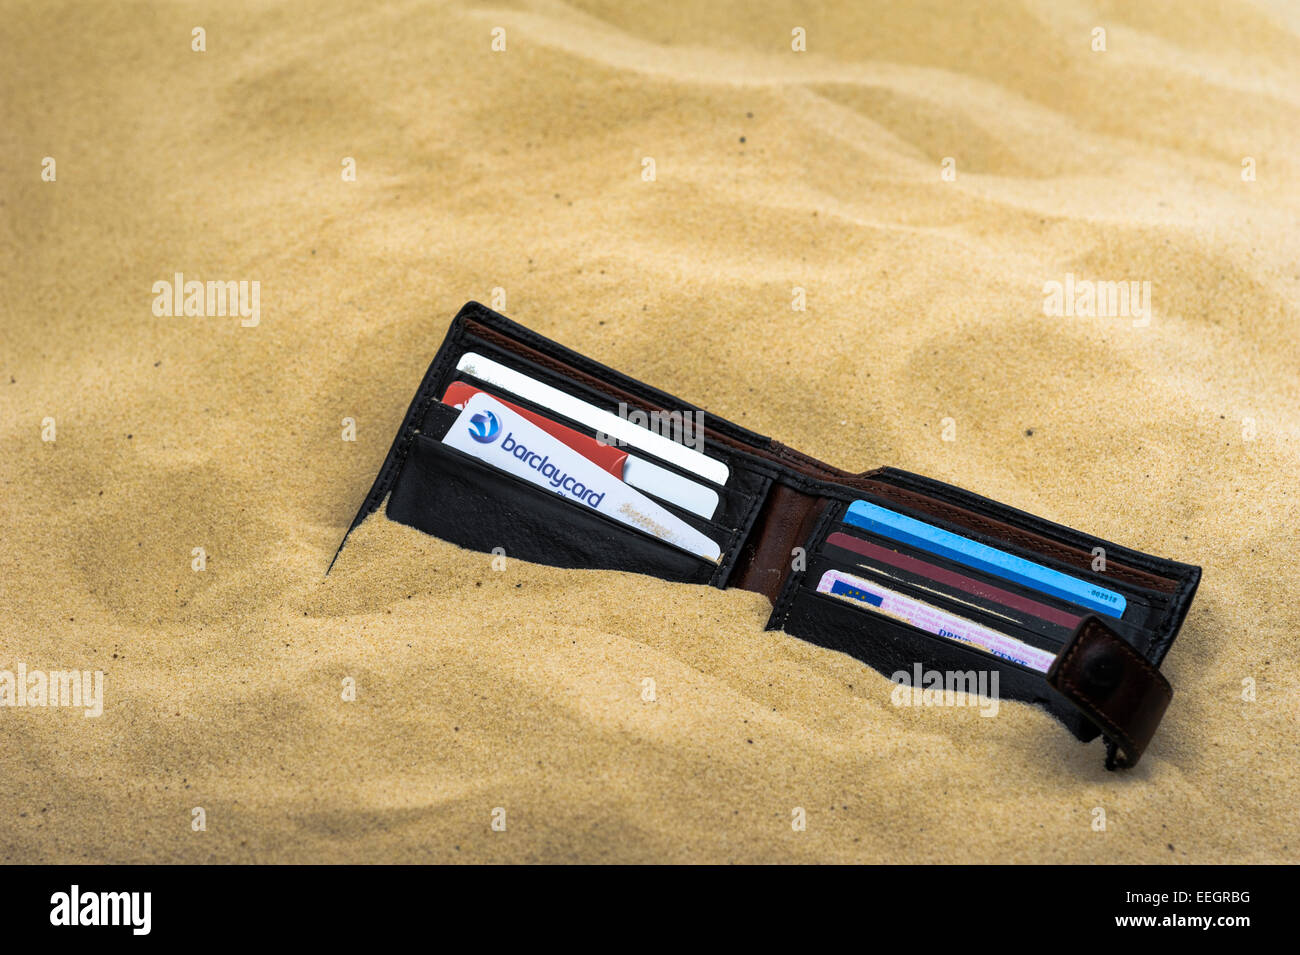 Wallet dropped and half buried on a sandy beach. - Stock Image